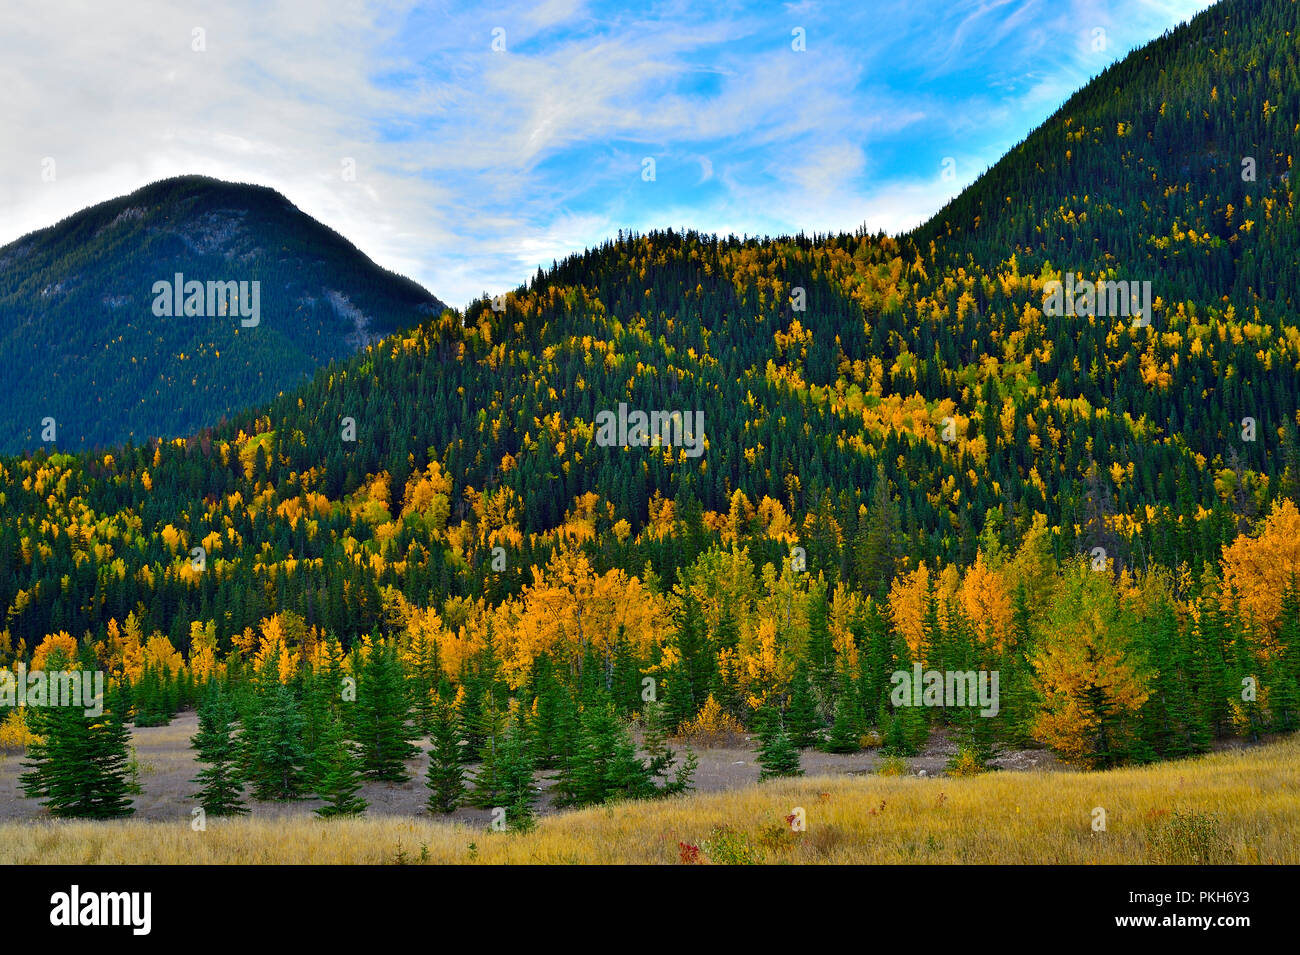 A horizontal autumn landscape of amixed forest with deciduous trees in amongst the conifers in Jasper National Park. - Stock Image